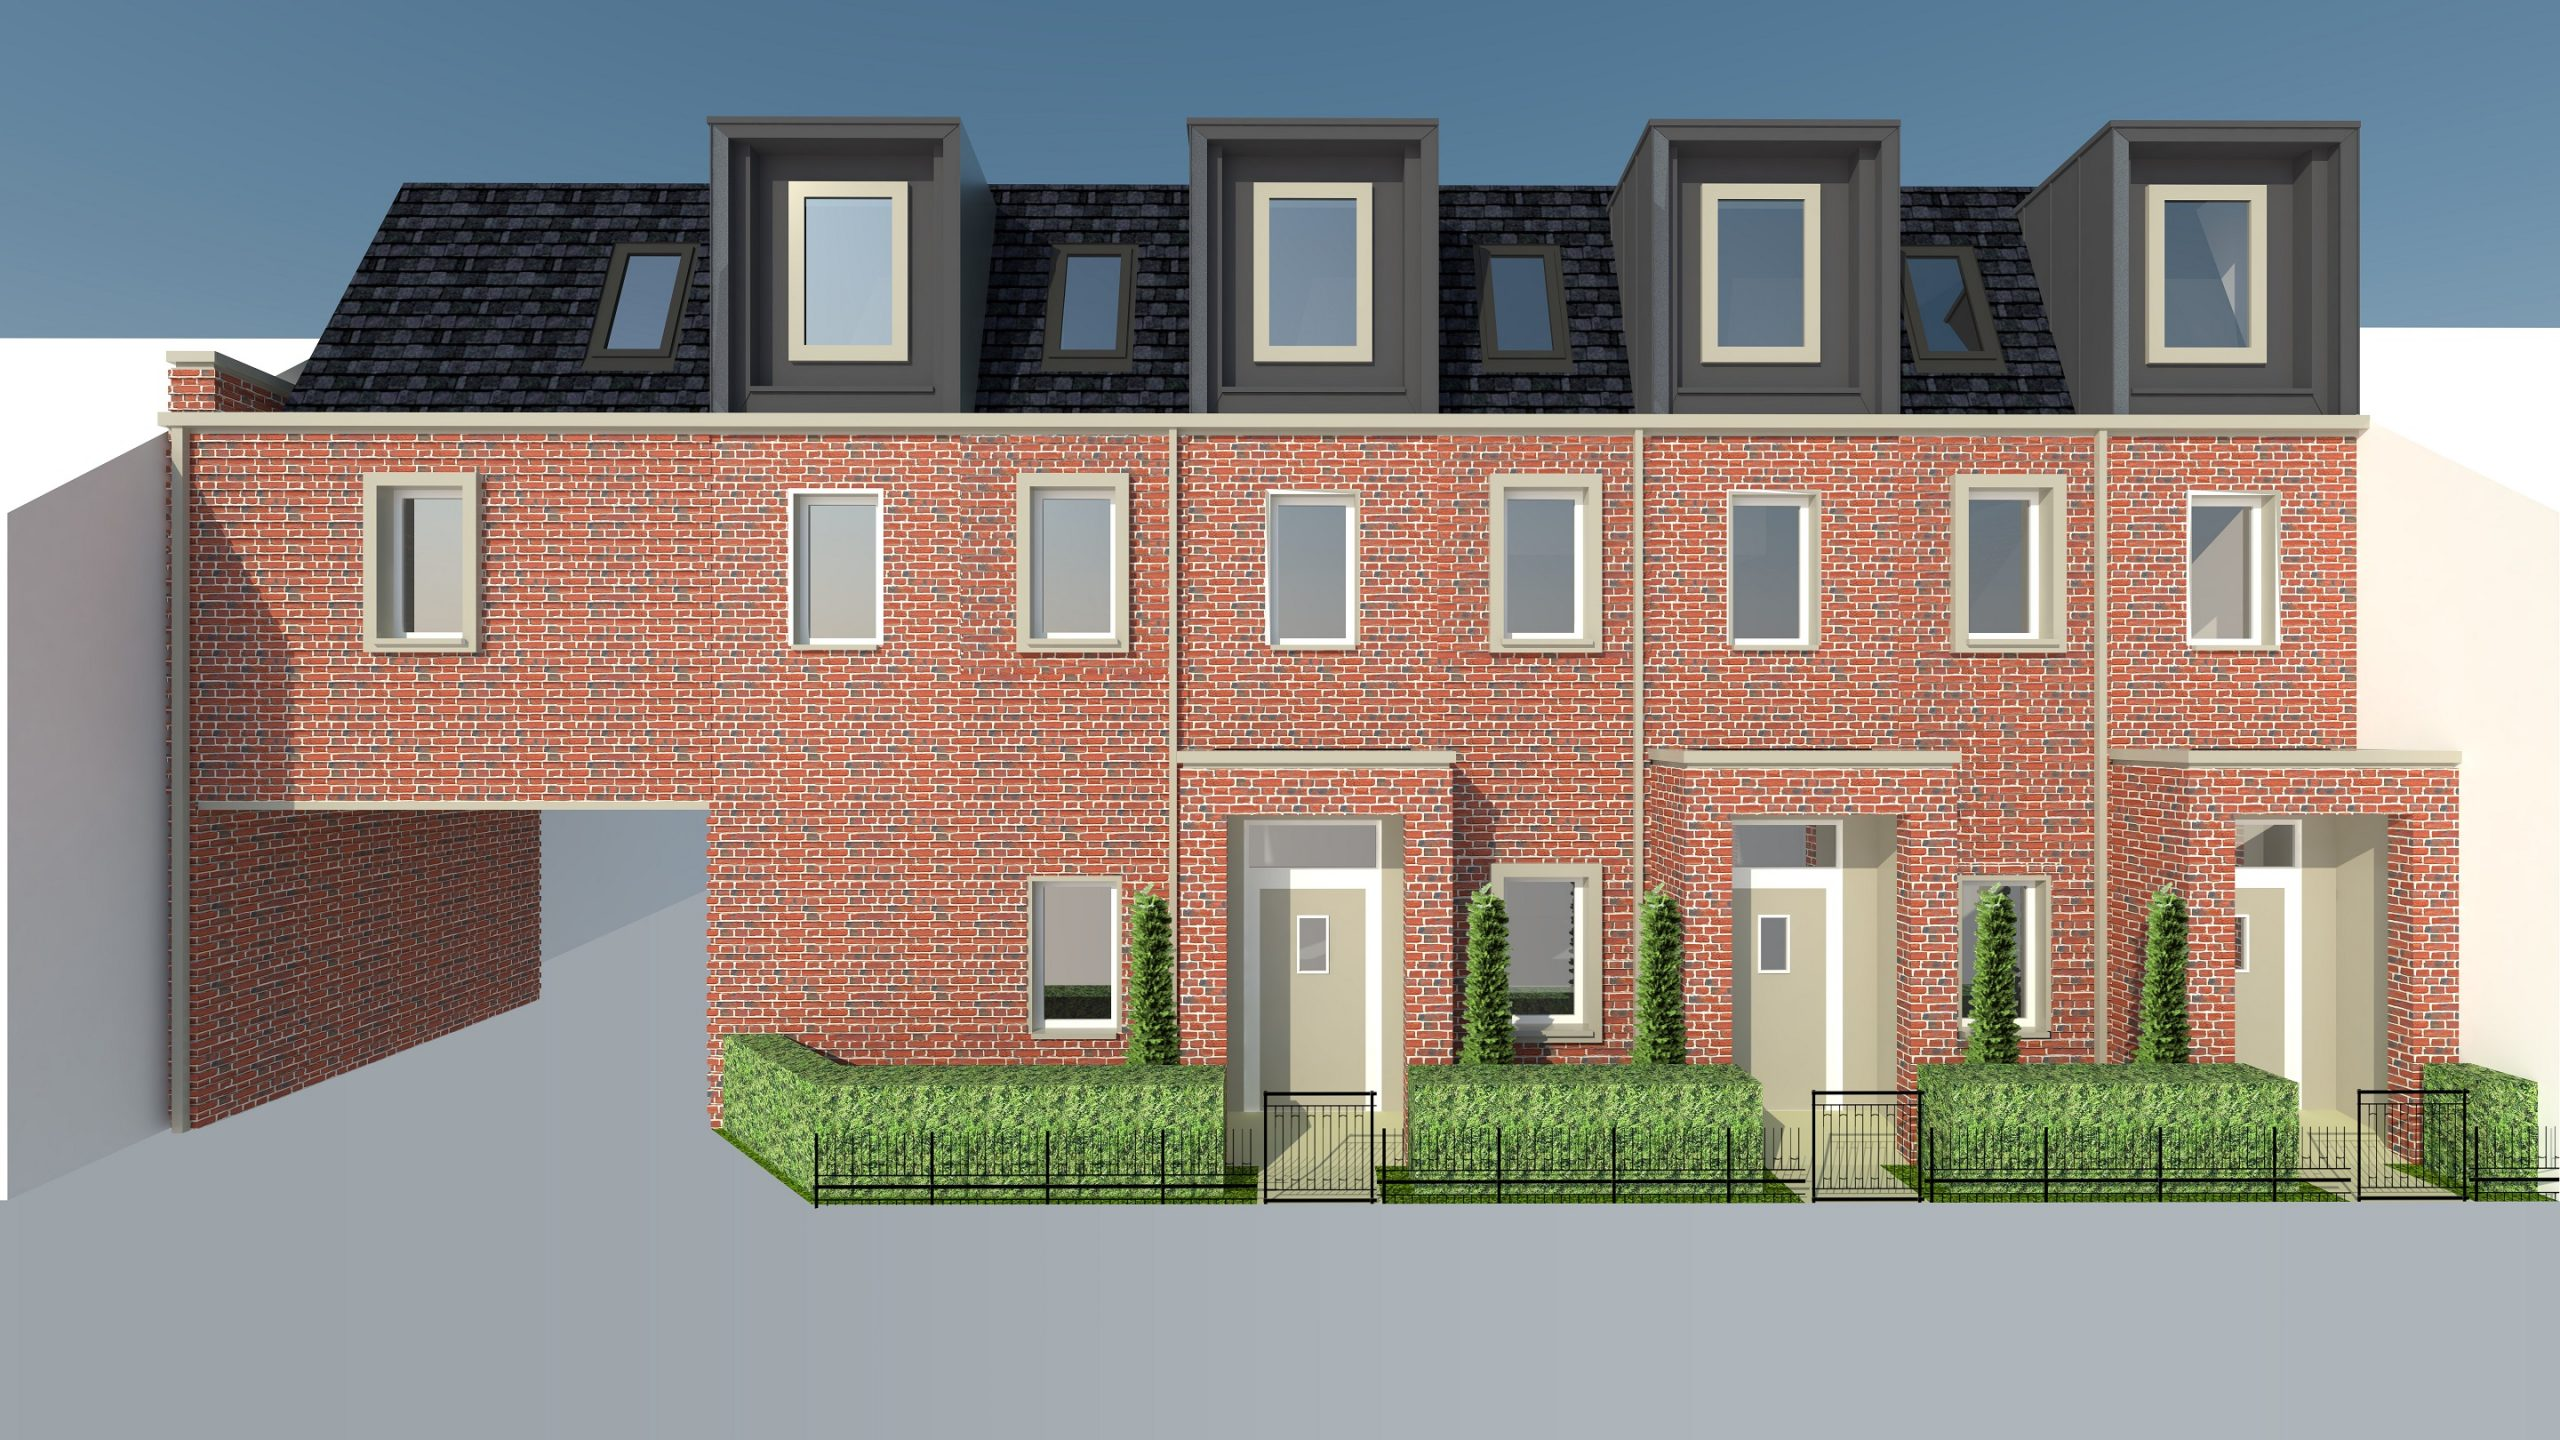 Construction starts on building new council-owned family homes in Military Road, Colchester